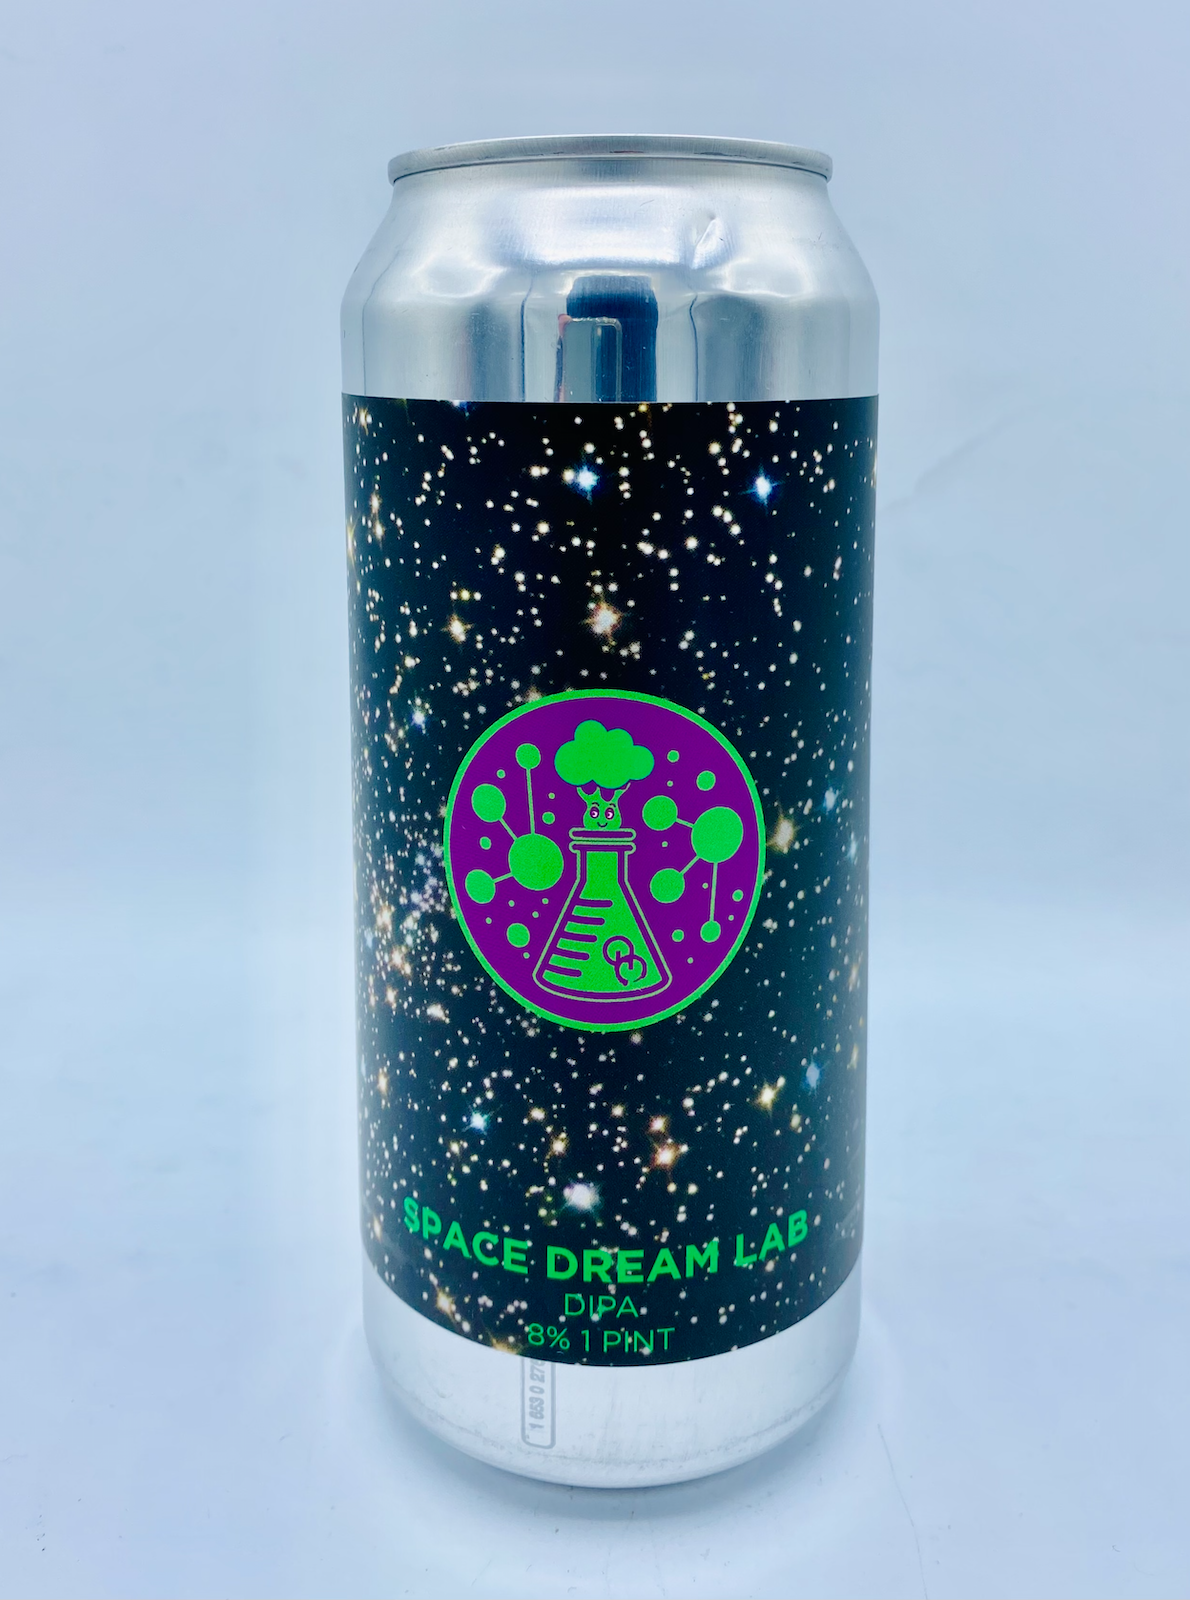 Equlibrium Brewery - Space Dream Lab 8%